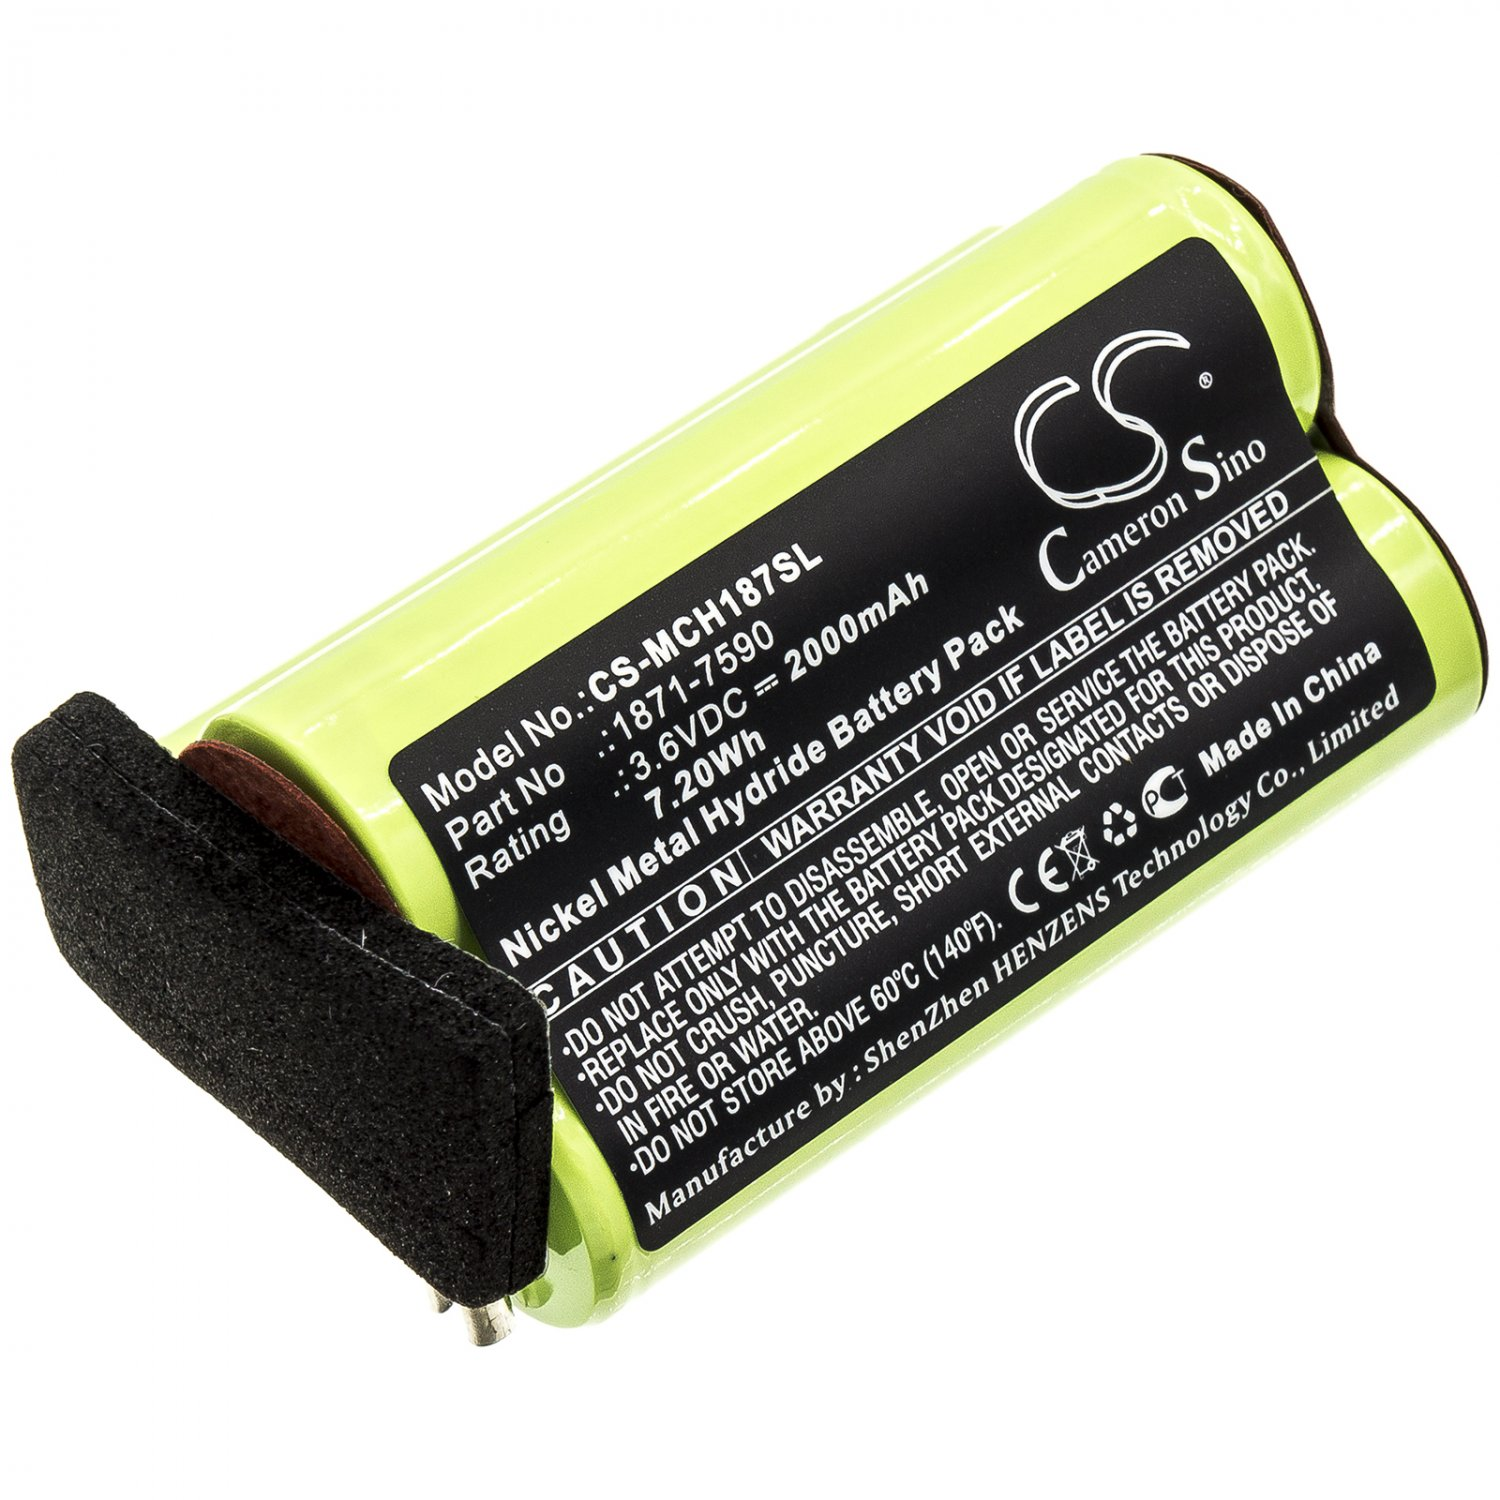 BATTERY MOSER 1871-7590 FOR ChromStyle 1871, Super Cordless 1872 clipper, Wella Academy ChromStyle